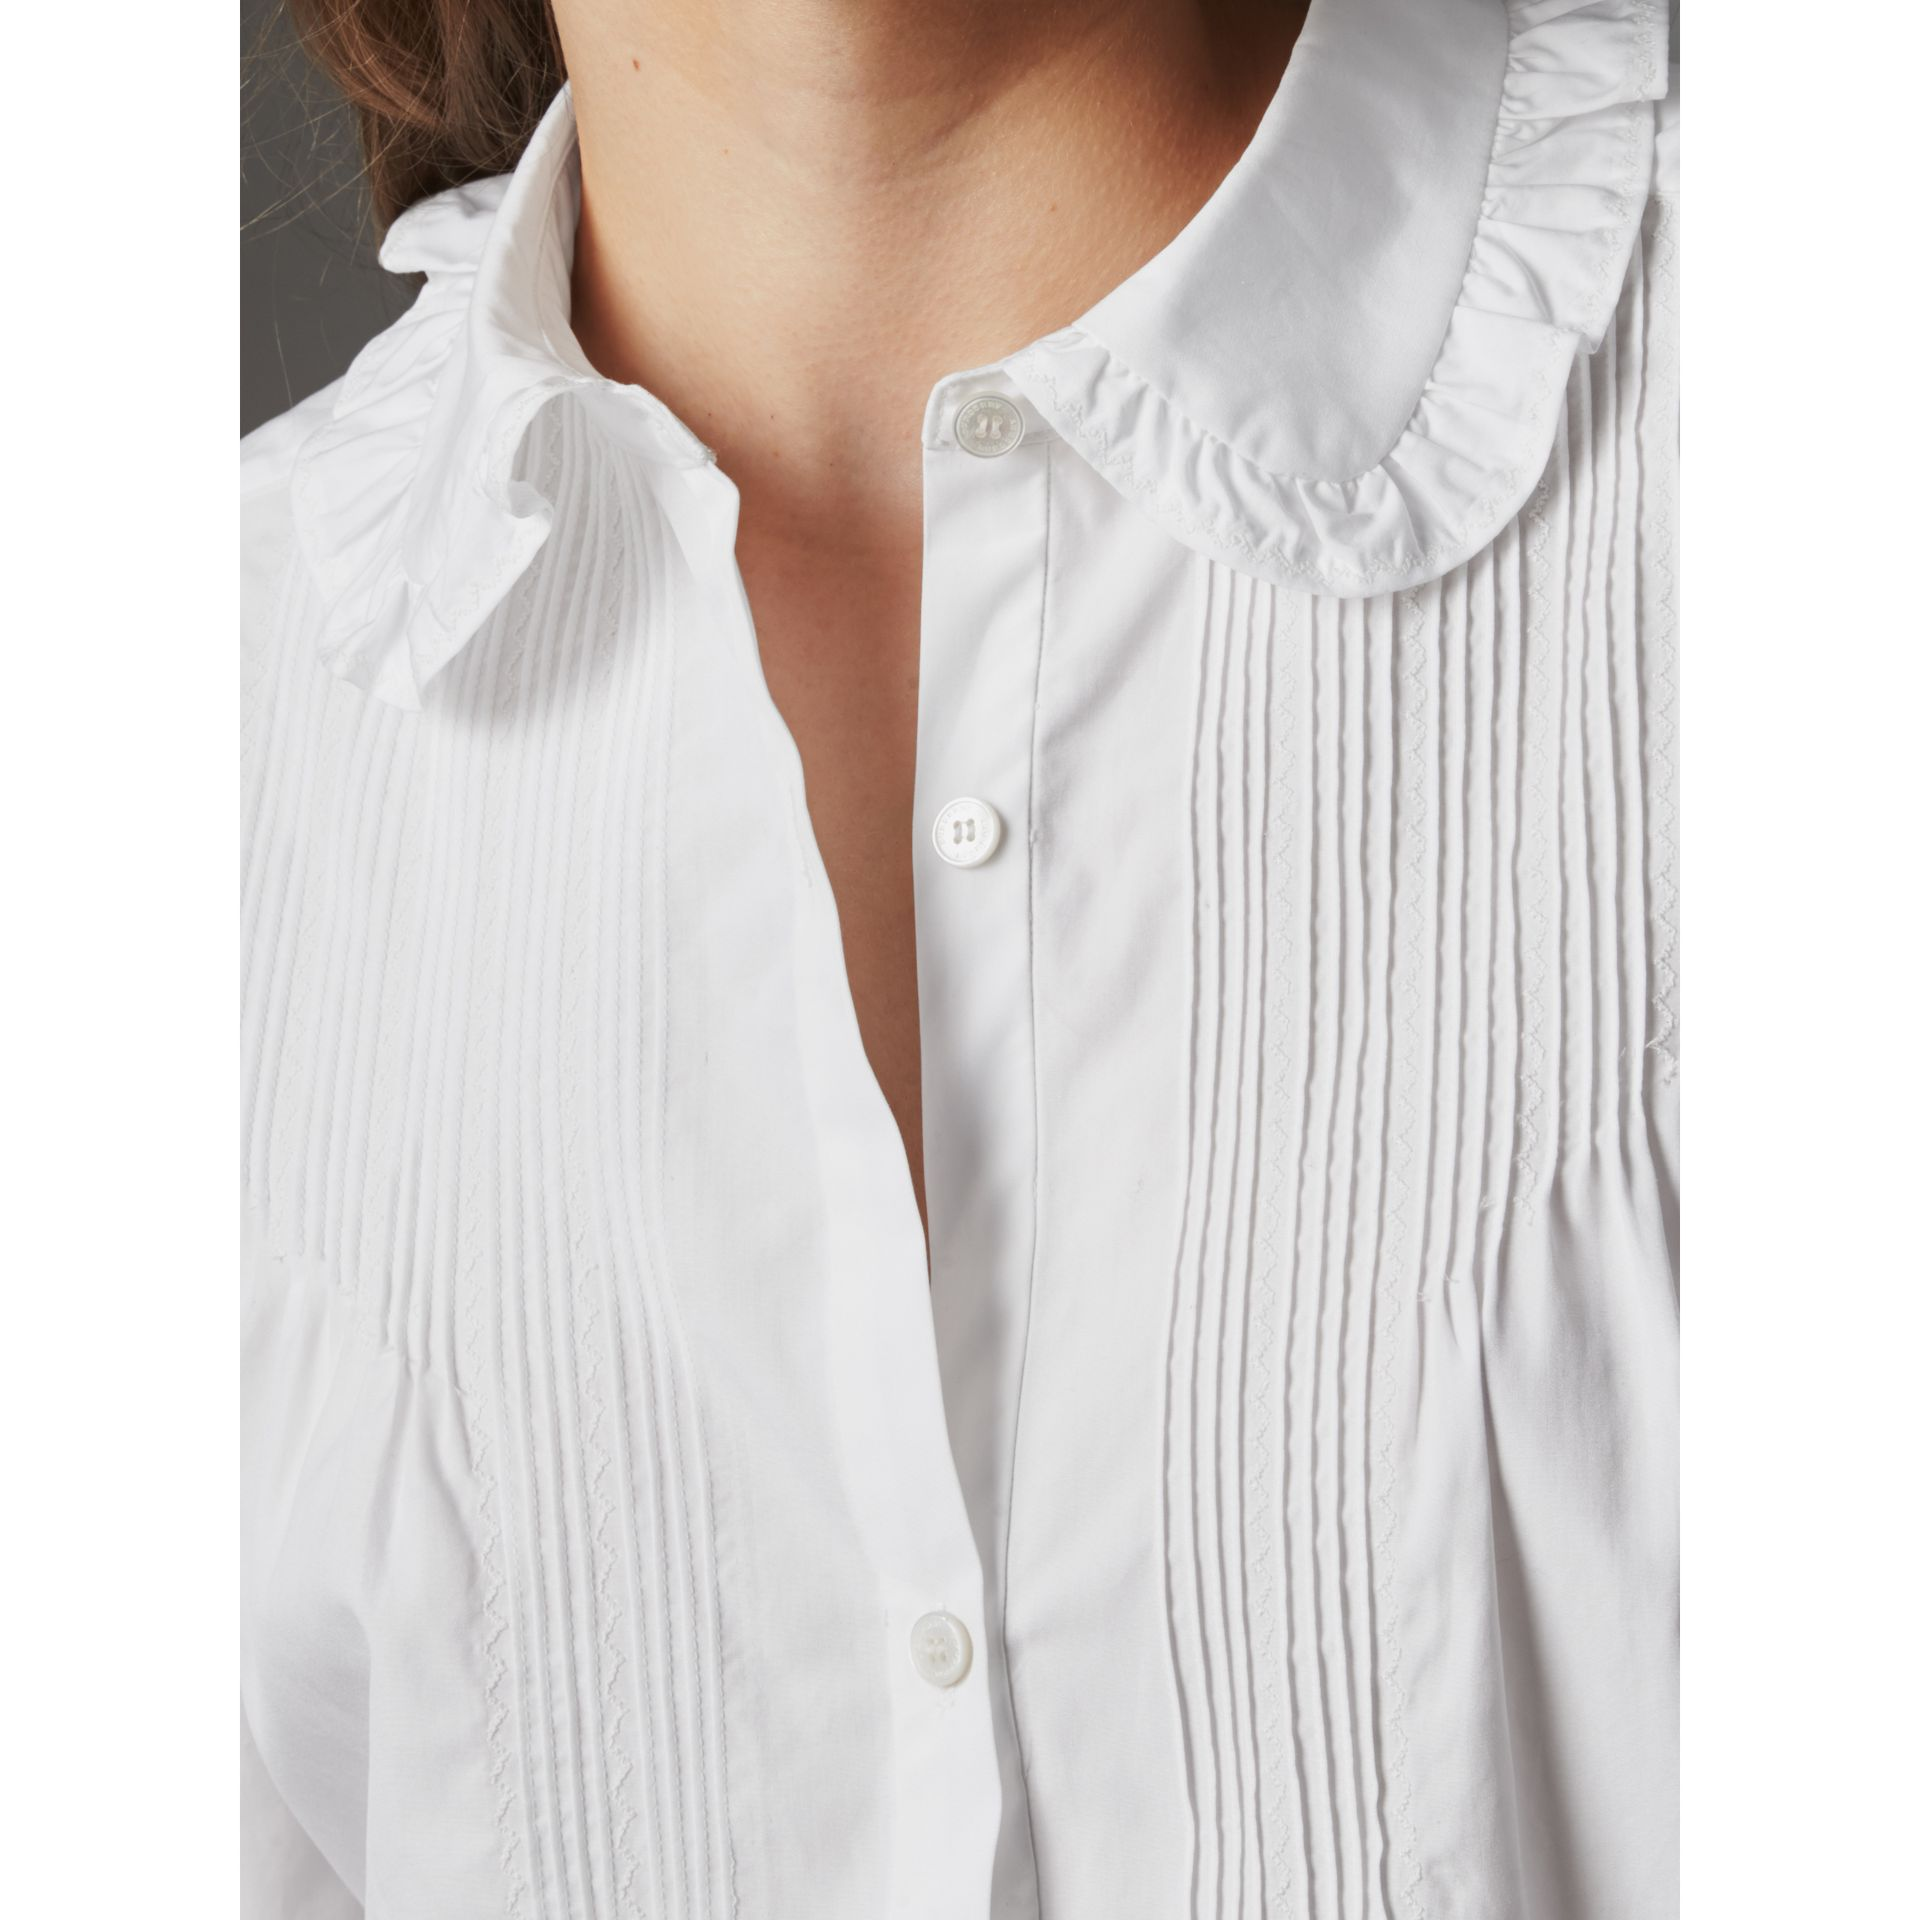 Ruffle and Pintuck Detail Cotton Shirt in White - Women | Burberry - gallery image 1